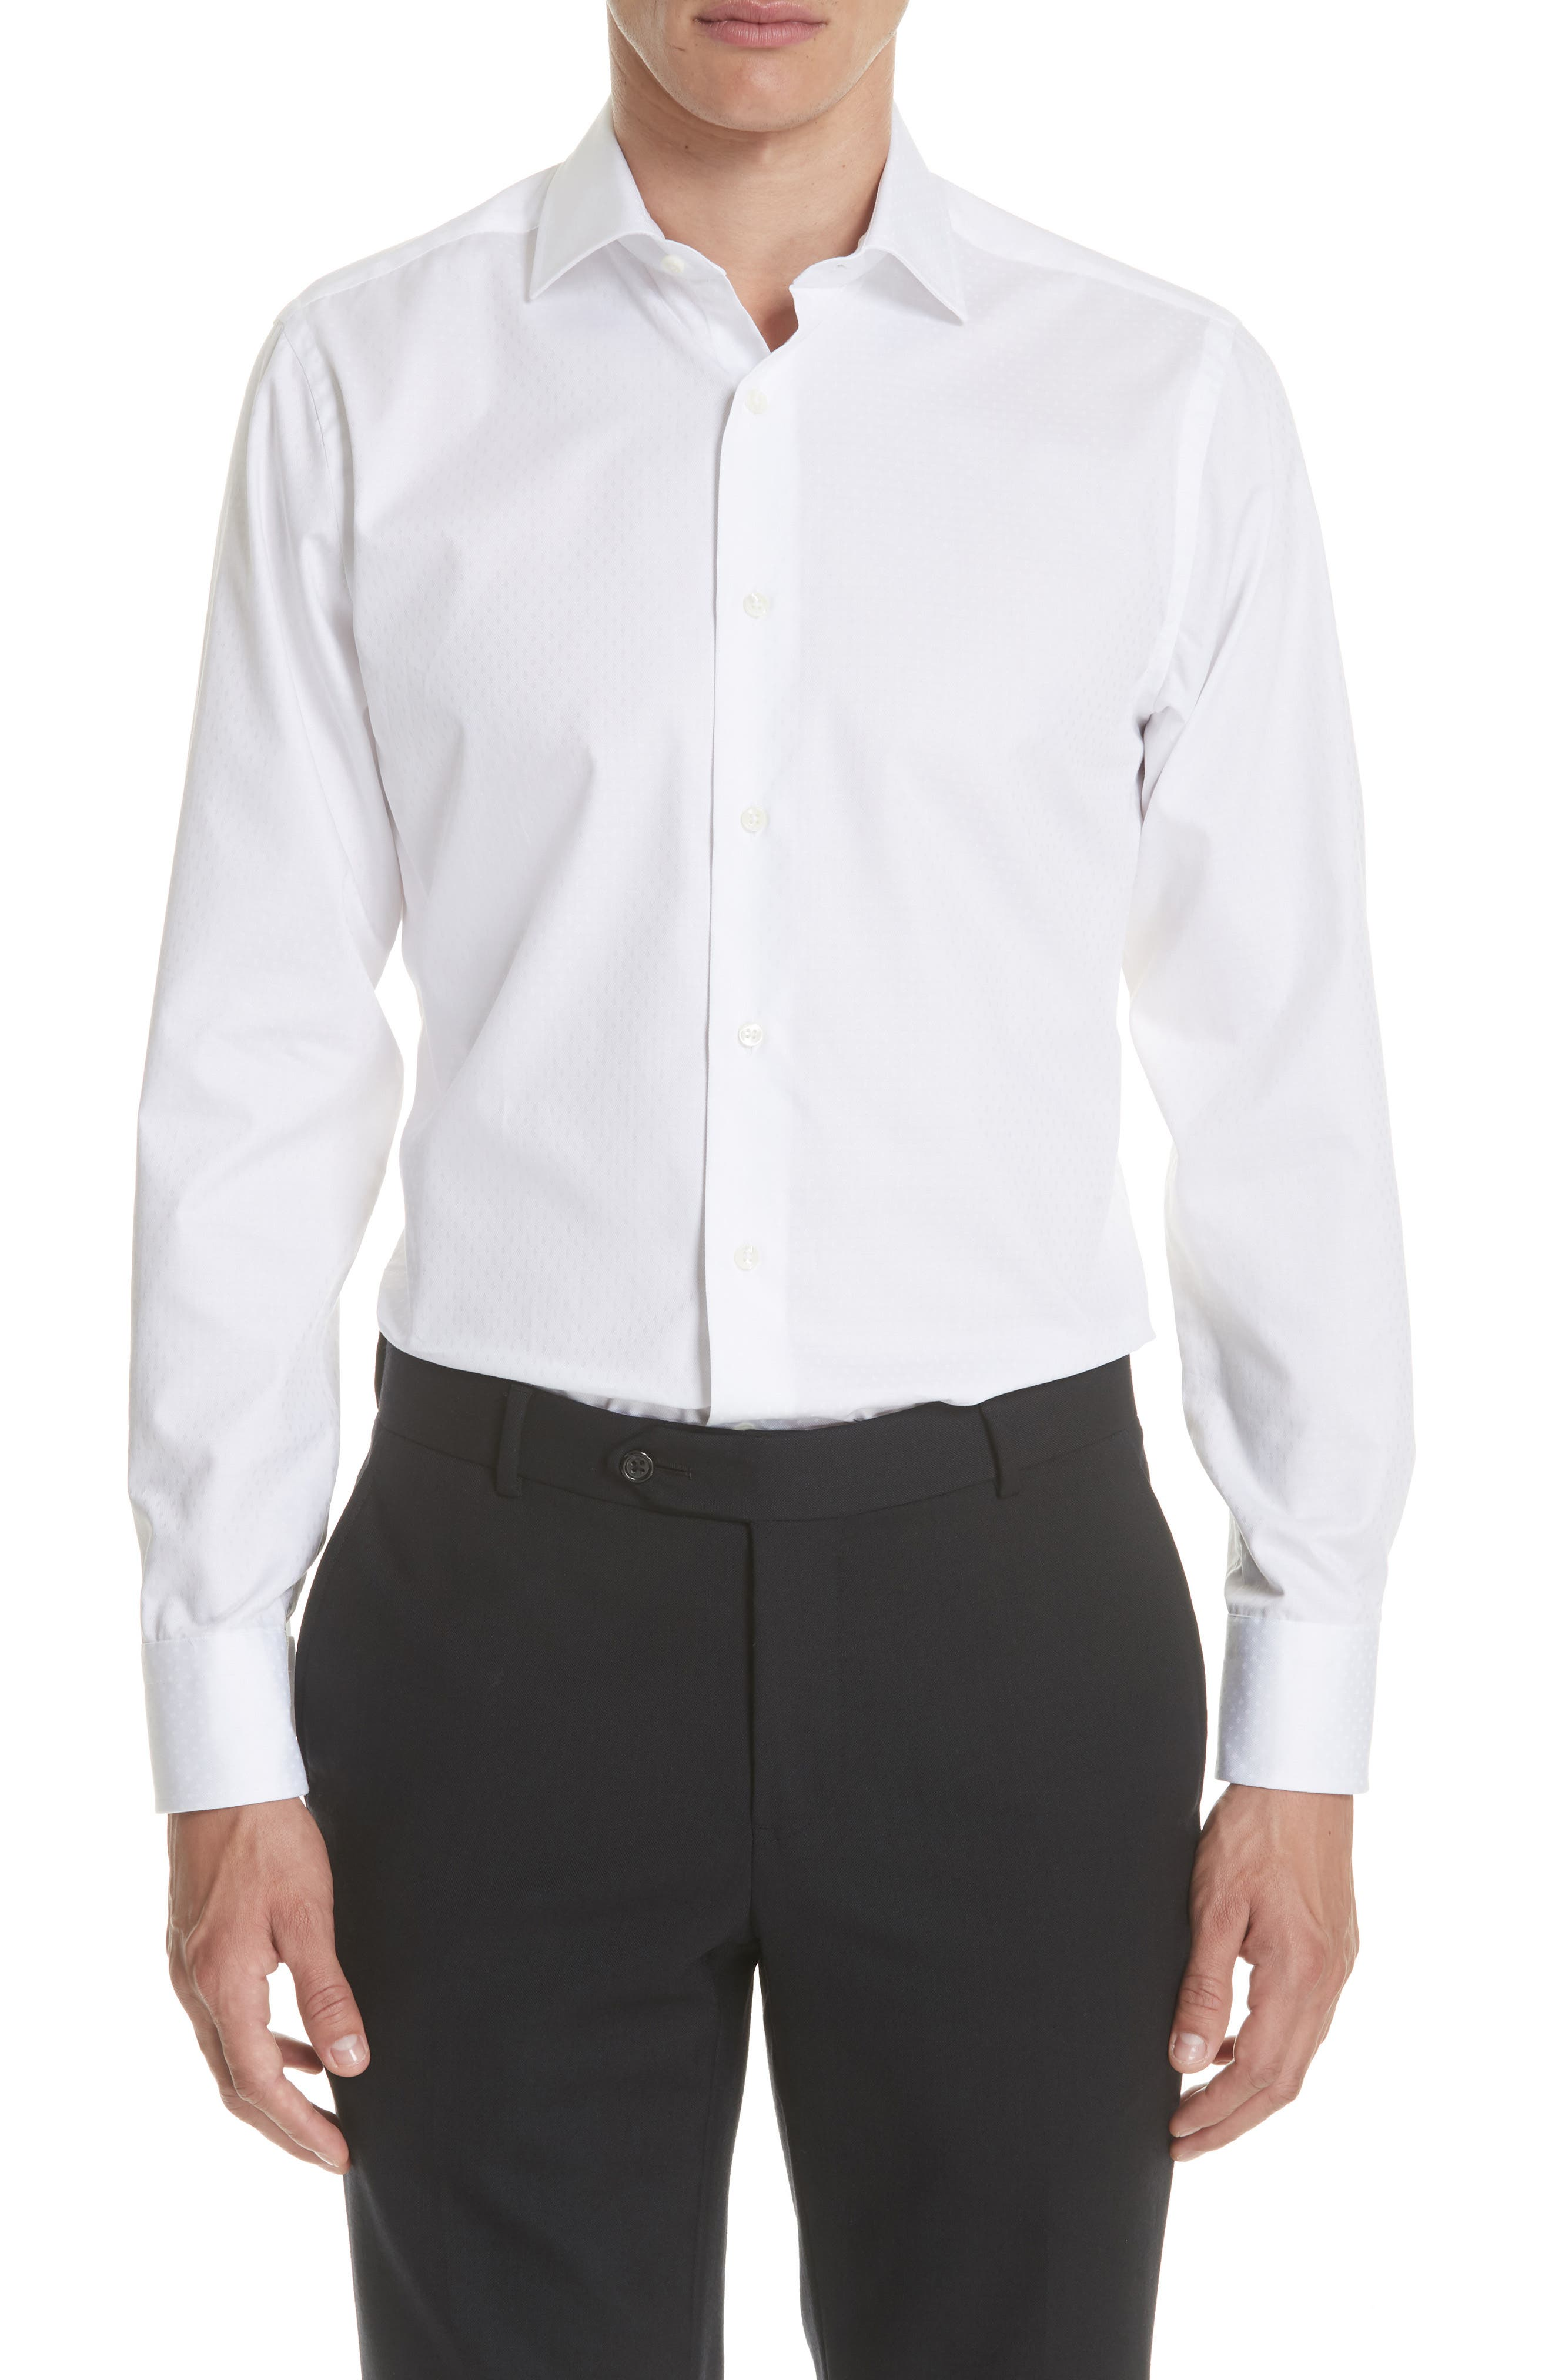 Regular Fit Solid Dress Shirt,                             Main thumbnail 1, color,                             White